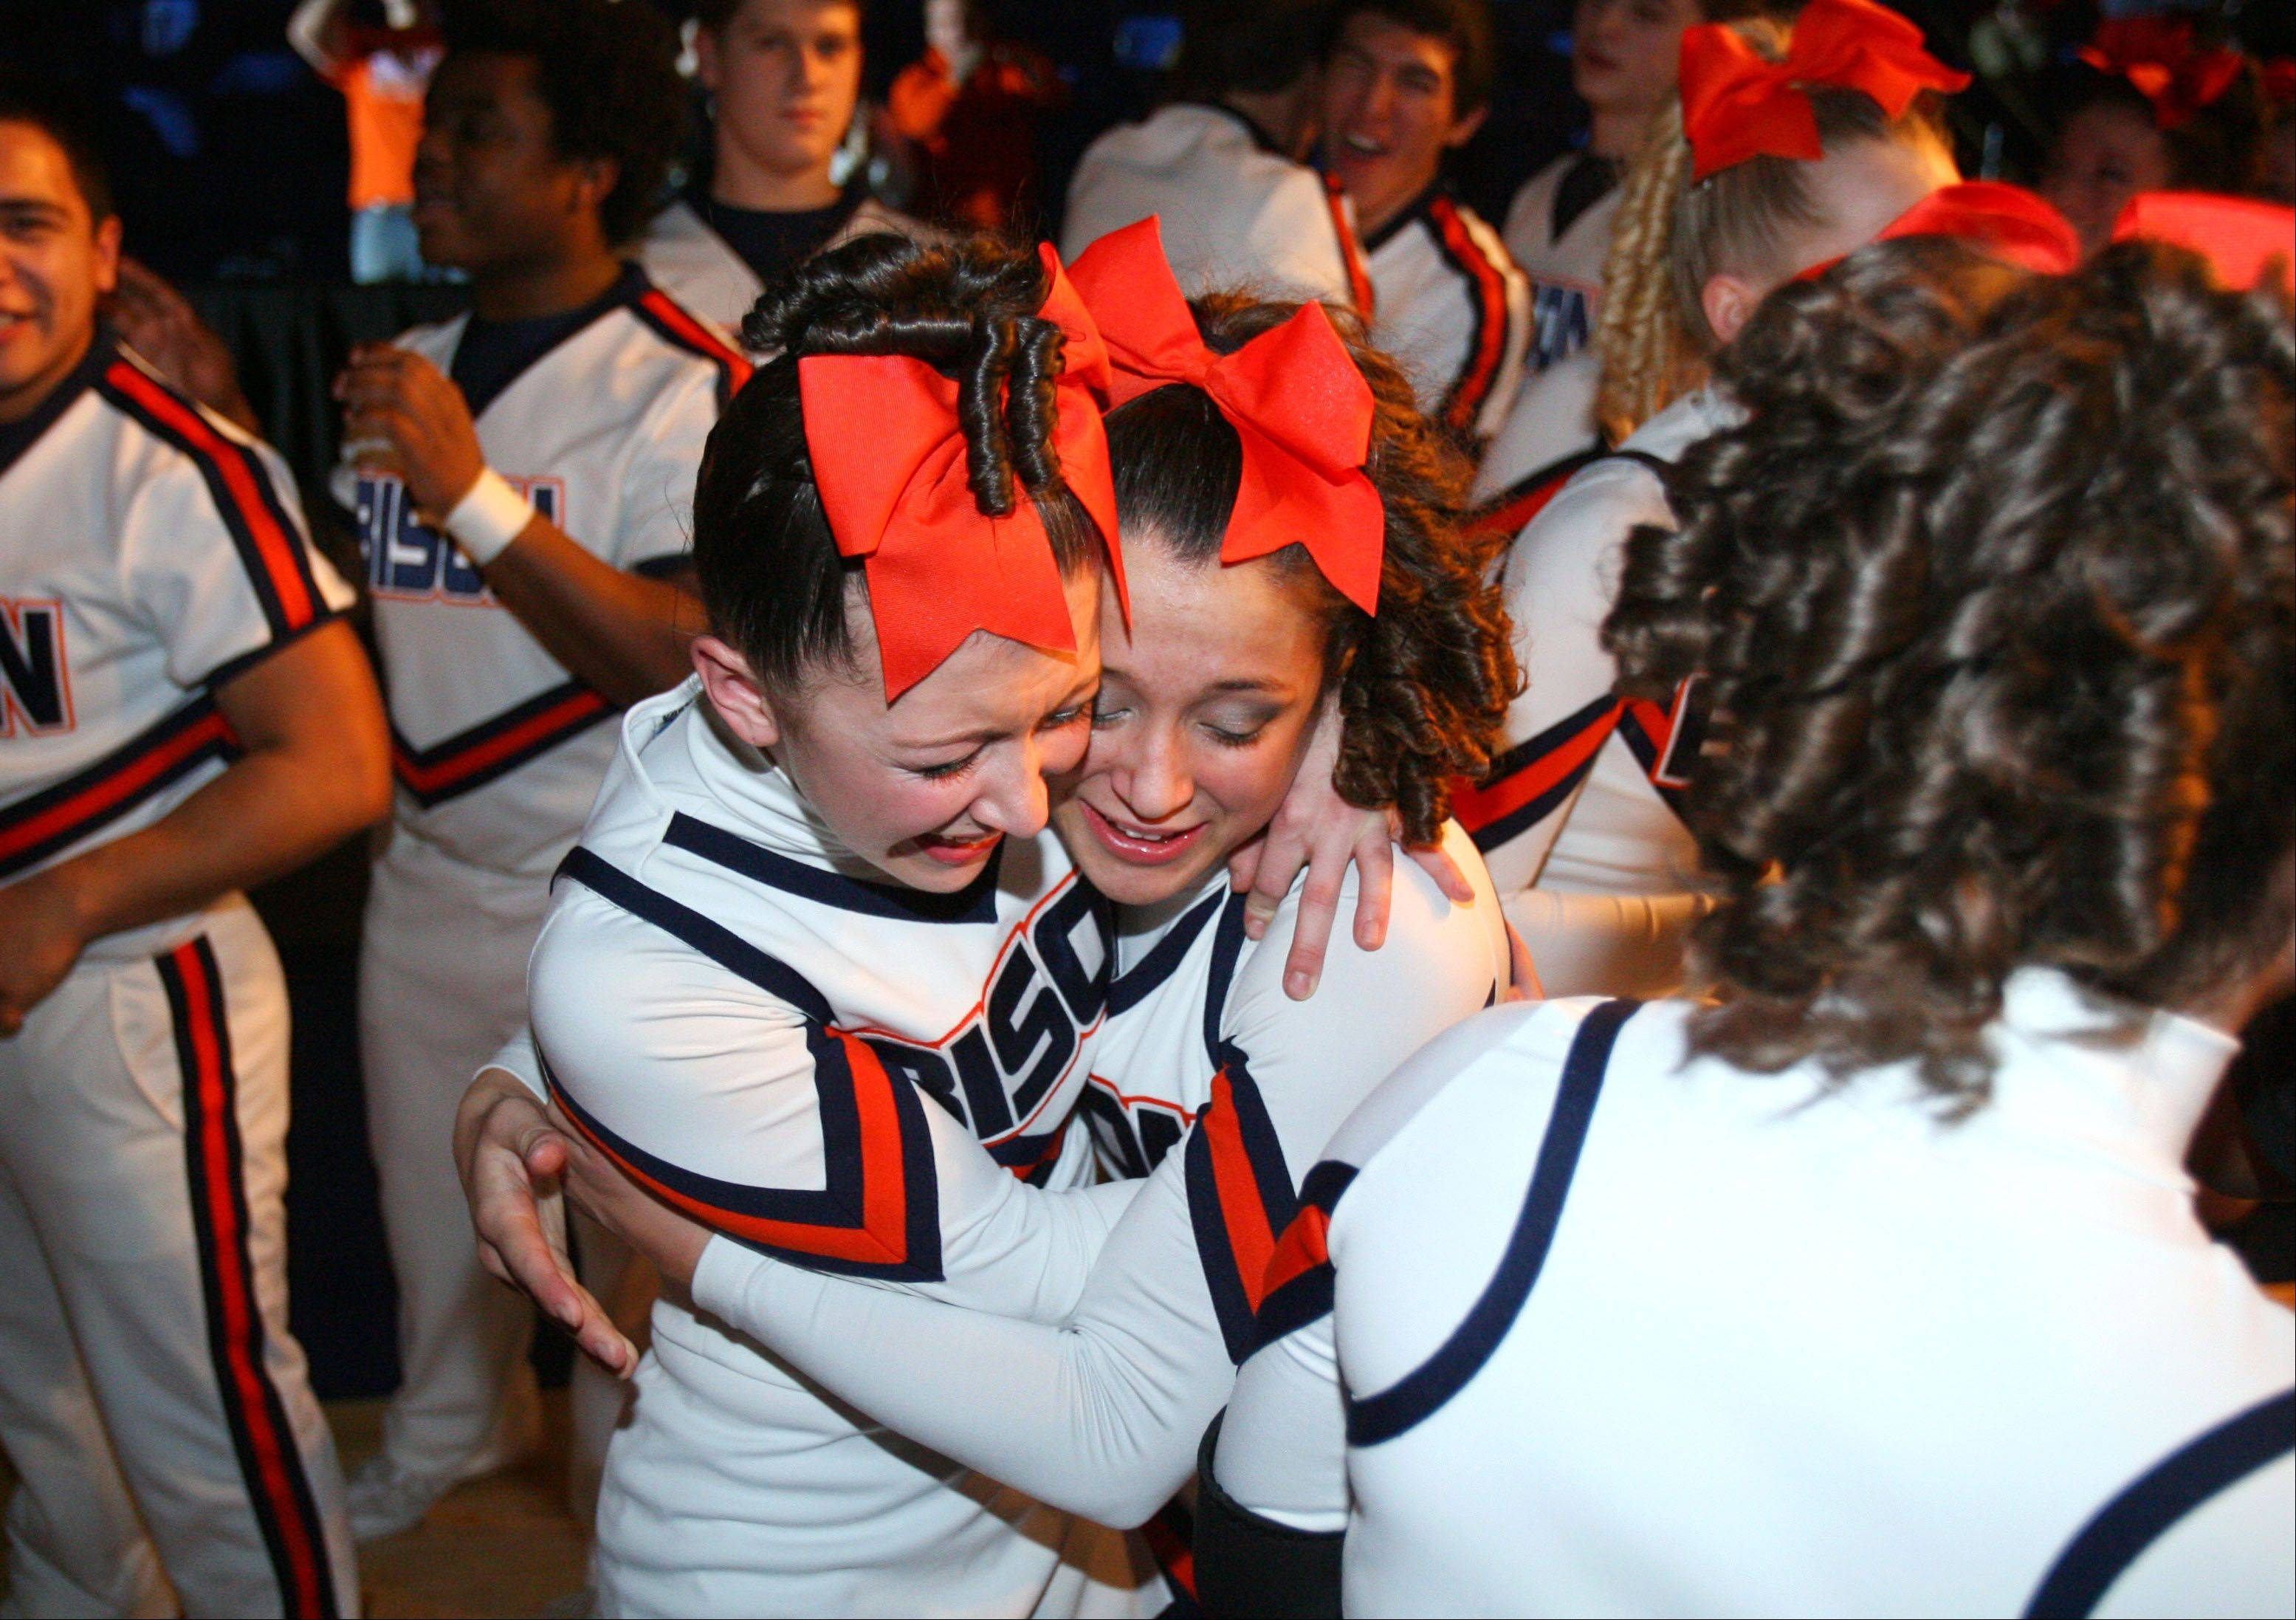 Buffalo Grove High School's large co-ed team celebrate after winning 1st place in the IHSA Competitive Cheerleading finals on Saturday, Feb. 2 at the U.S. Cellular Coliseum in Bloomington.